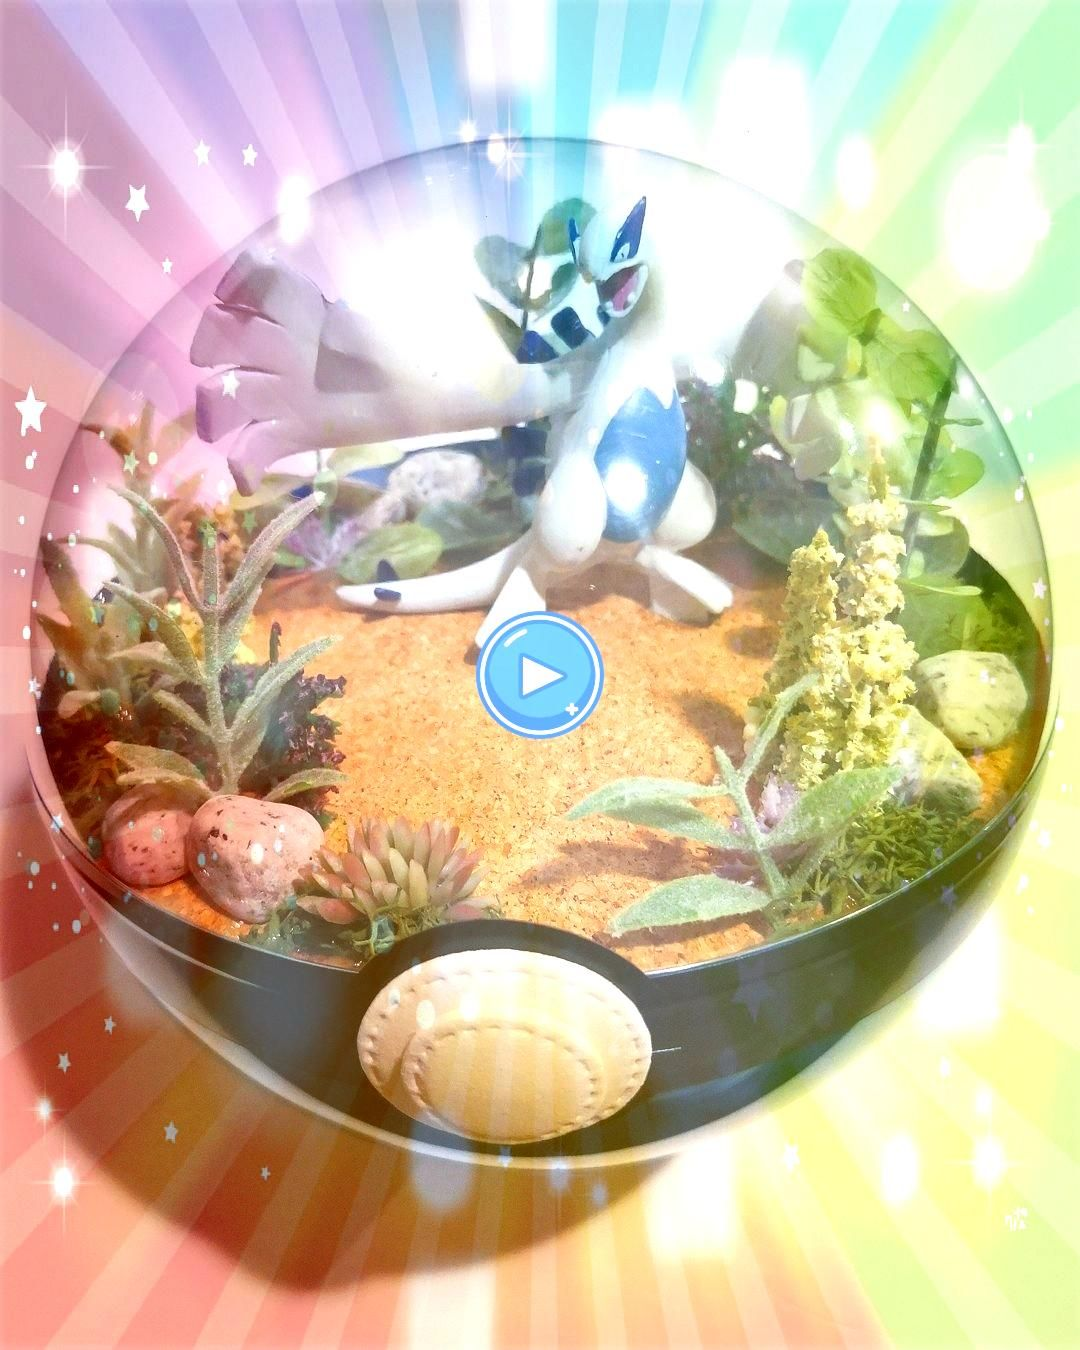 is all fired up and ready to handle anything  135 cm terrarium Lugia is all fired up and ready to handle anything  135 cm terrarium Snorlax pokeball terrarium  pokemon  c...